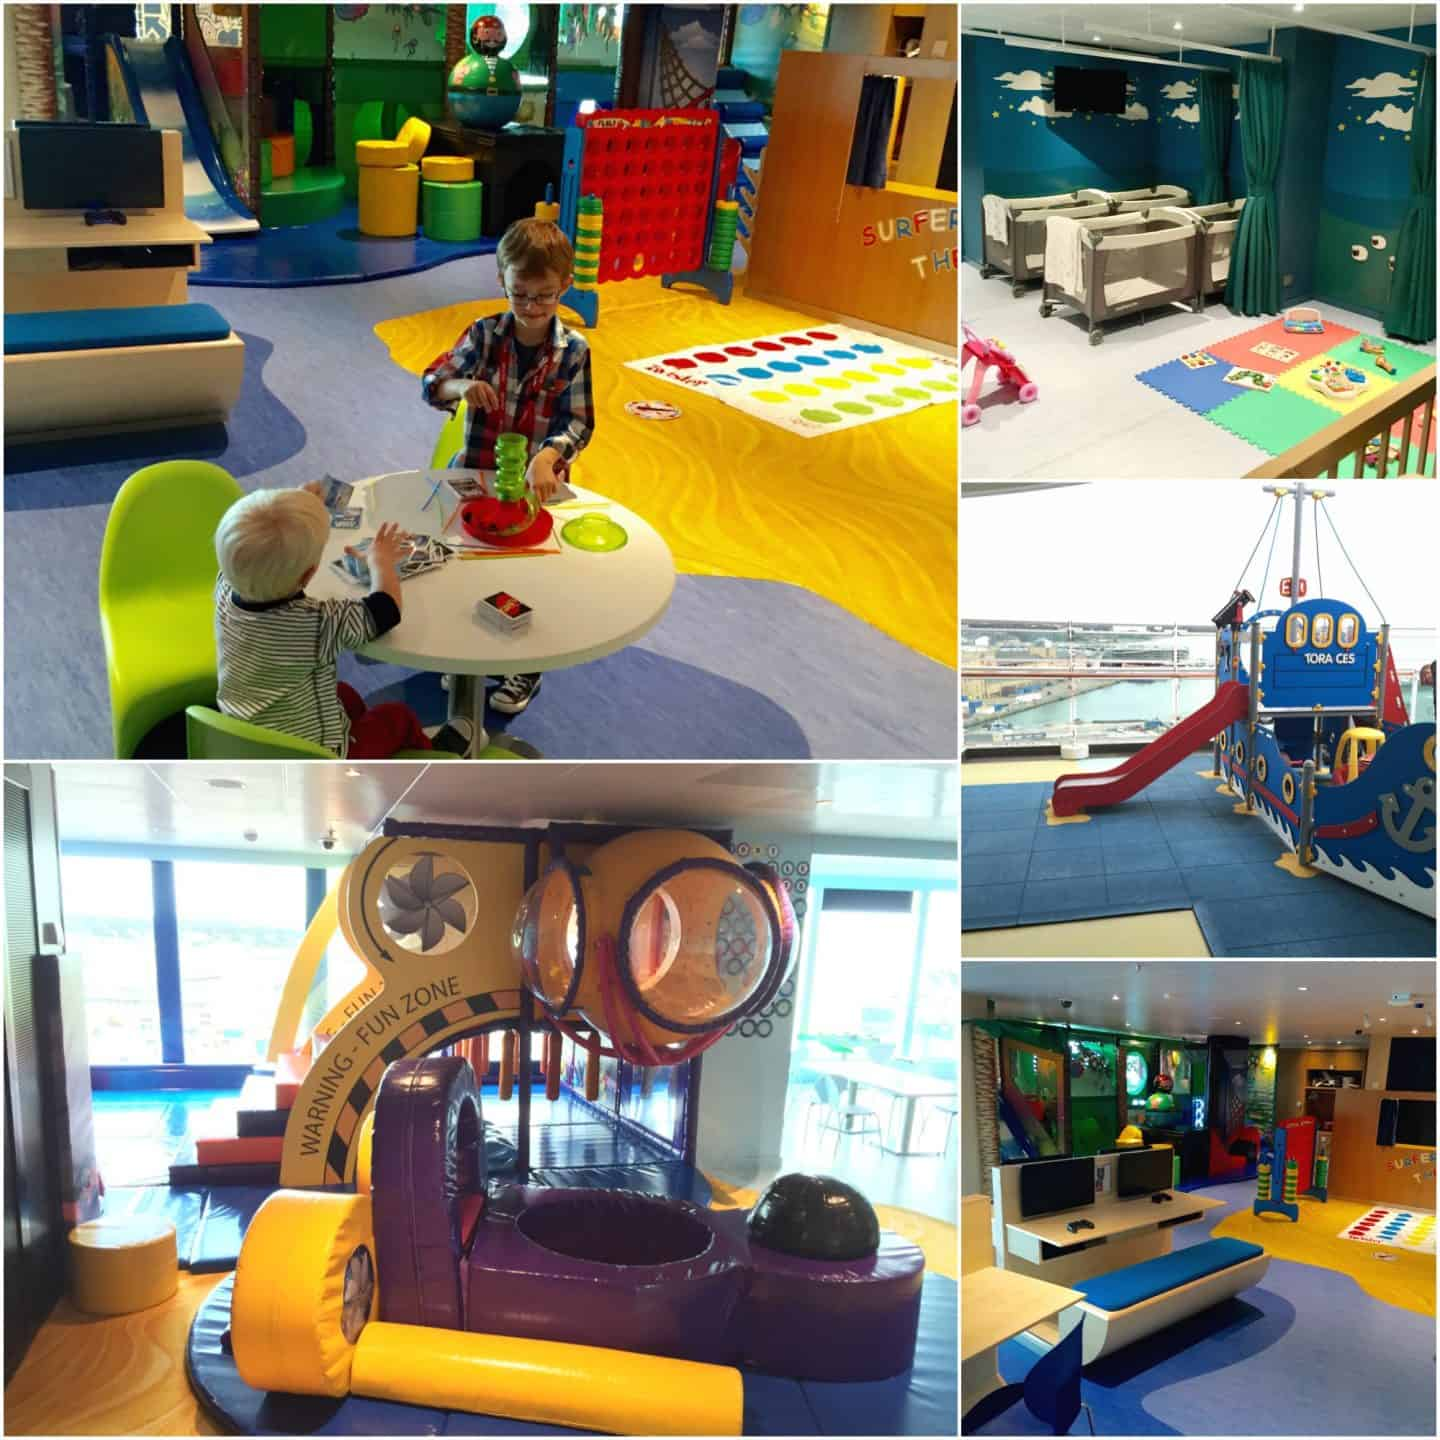 Some of the kids facilities onboard P&O Cruises Britannia